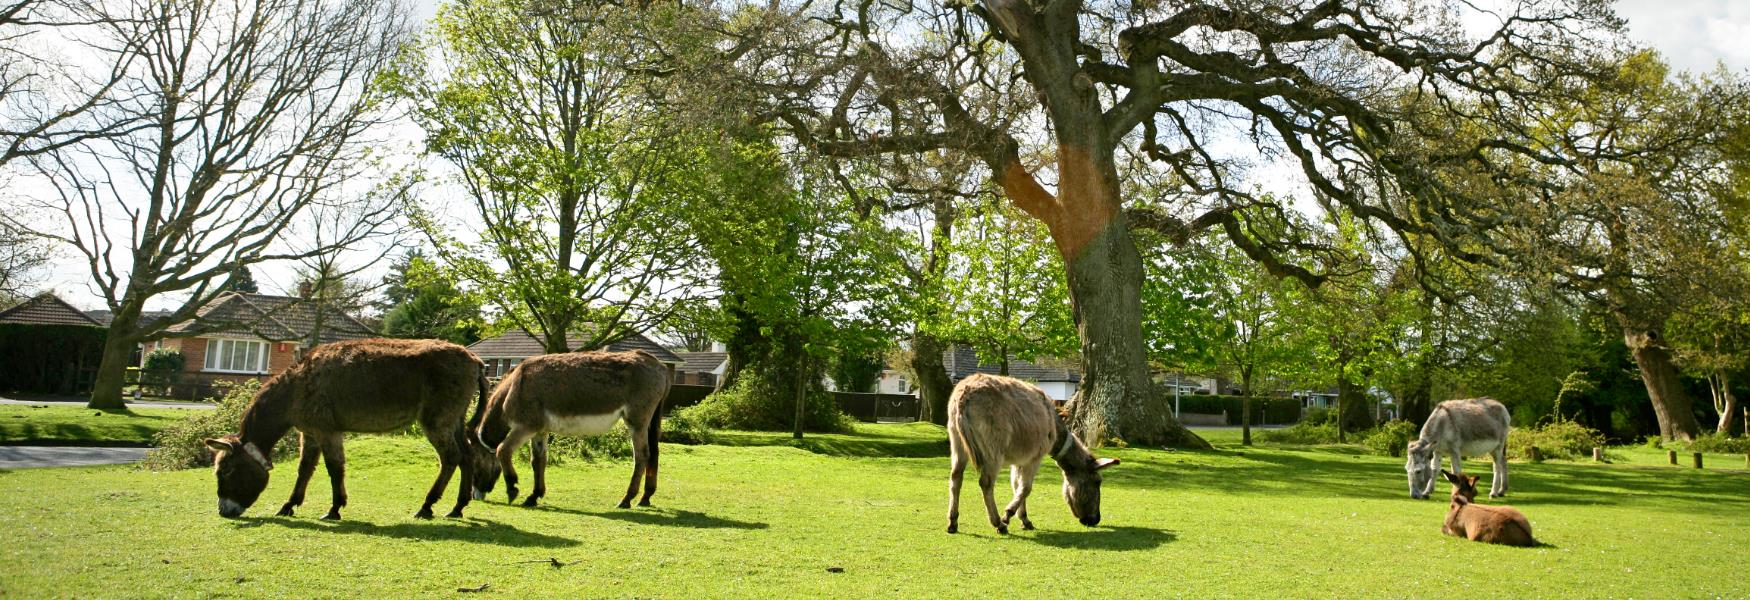 donkeys grazing in Brockenhurst in the new forest